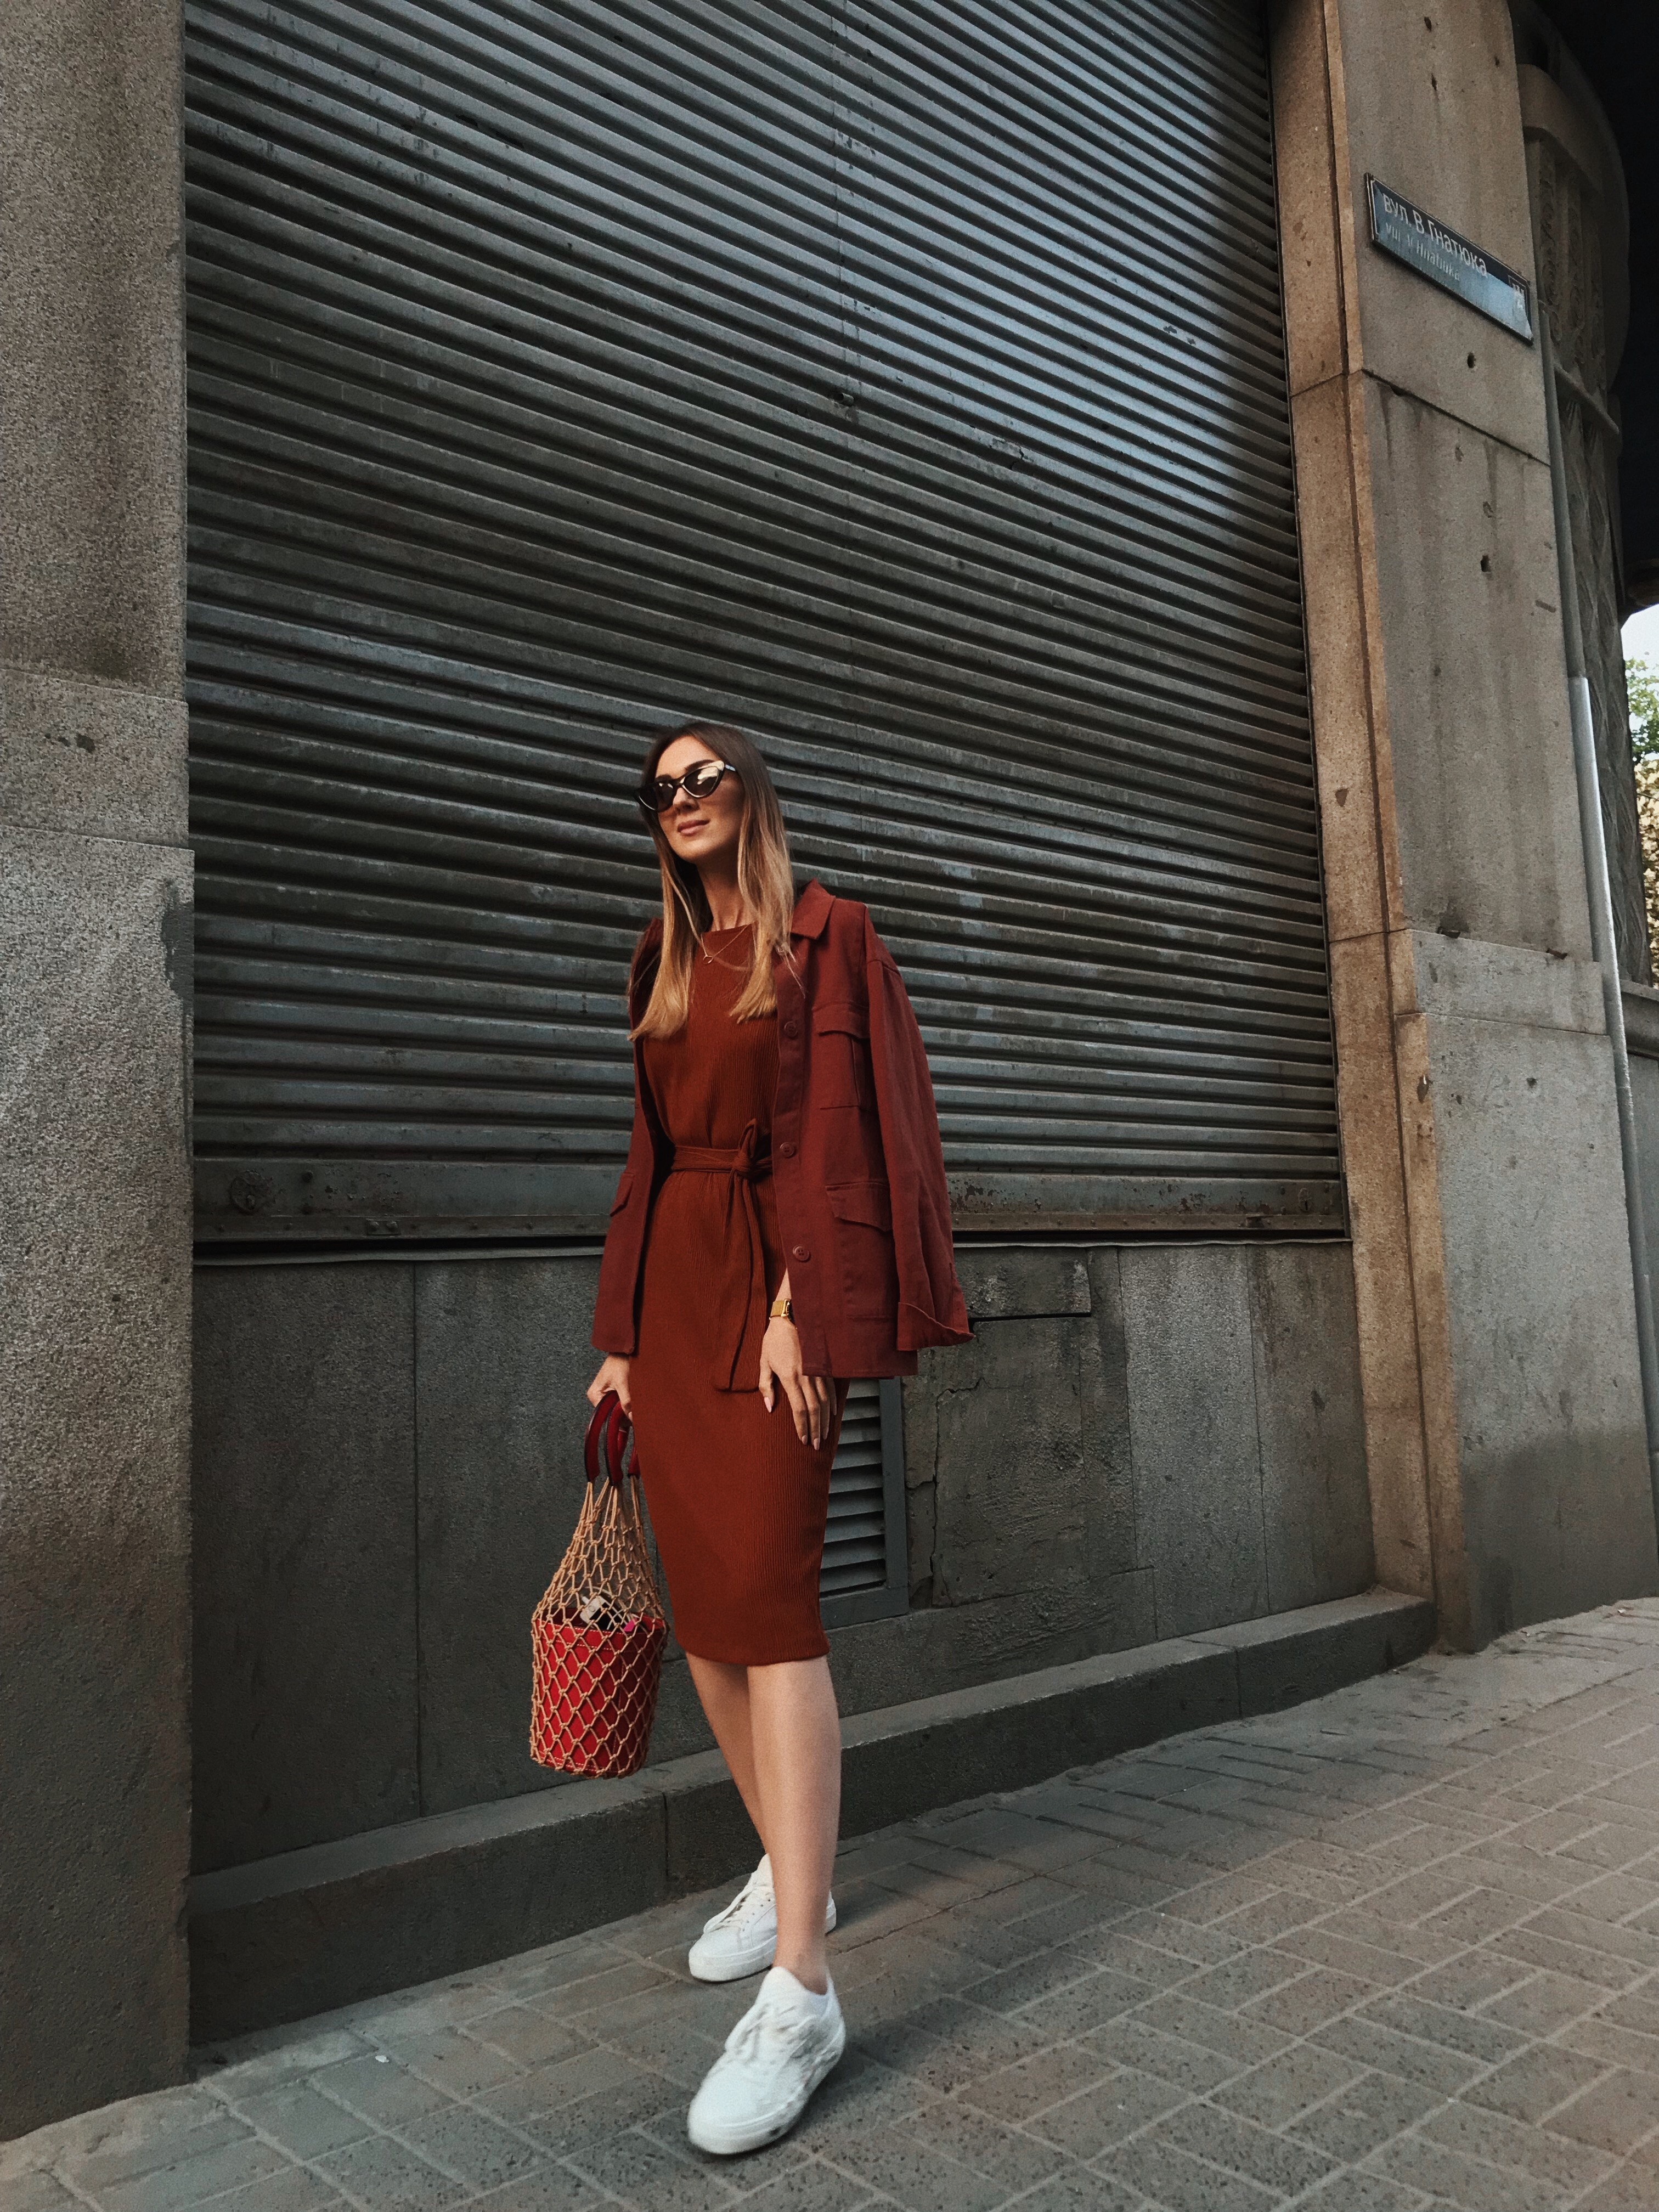 monochrome-red-brown-outfit-street-style